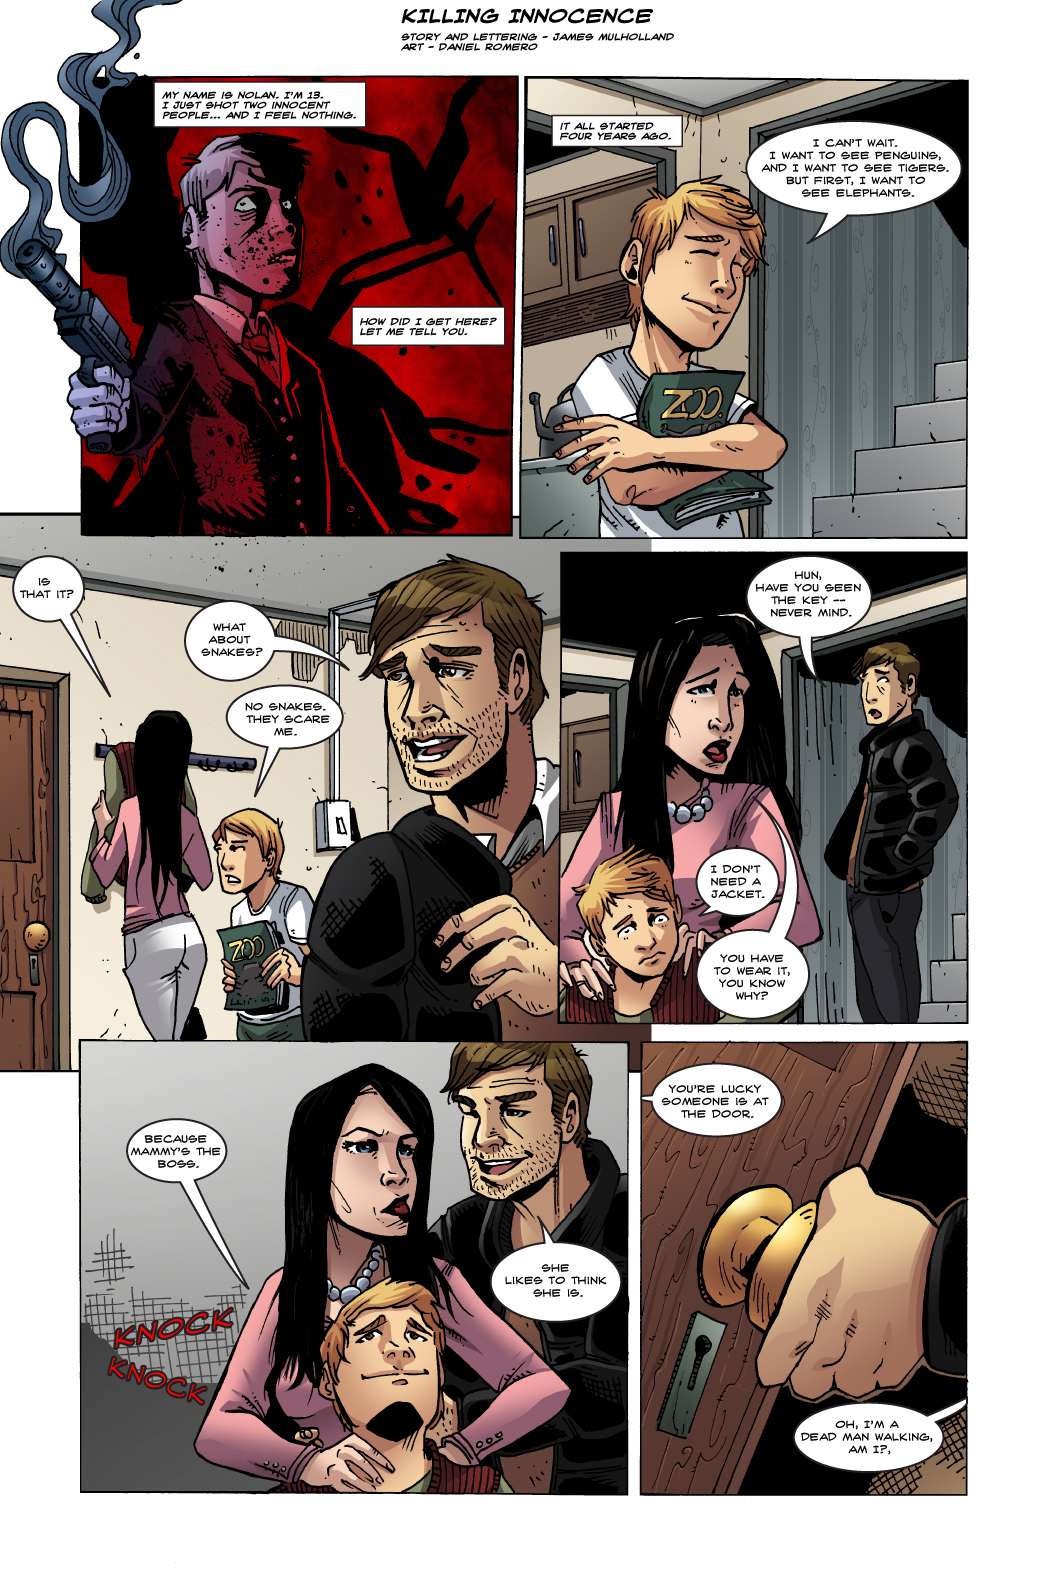 GONE IS INNOCENCE (Page 1)